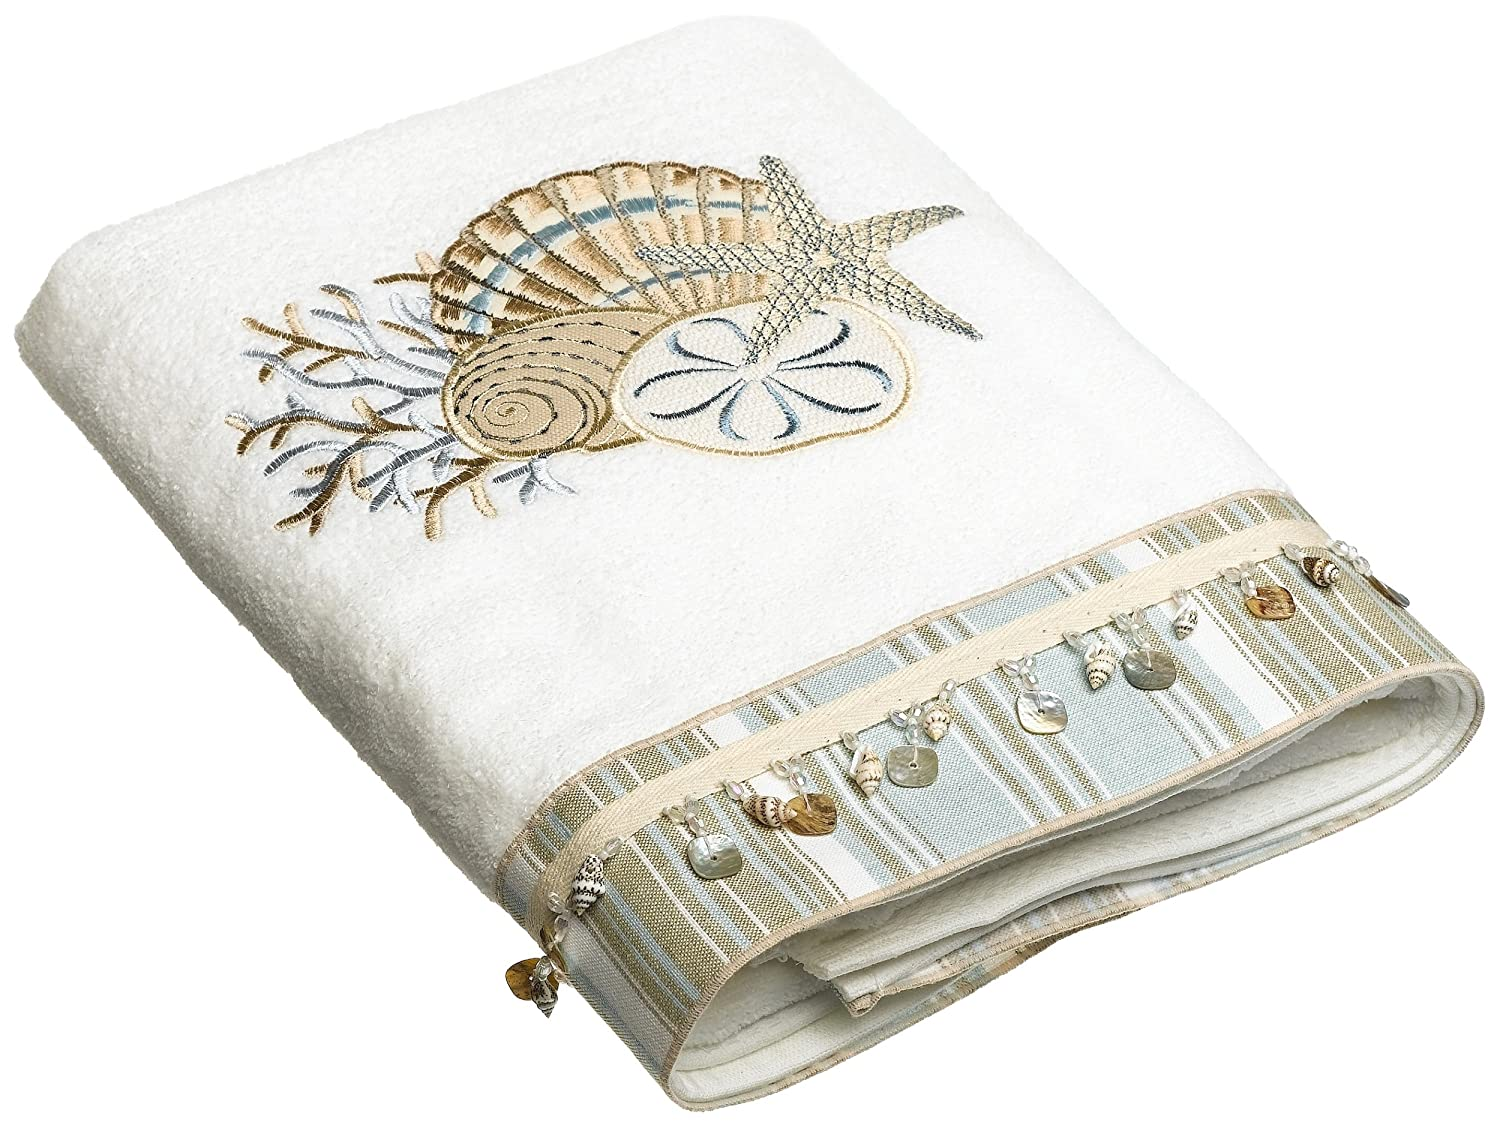 Avanti Linens By The Sea Bath Towel, White 10971WHT